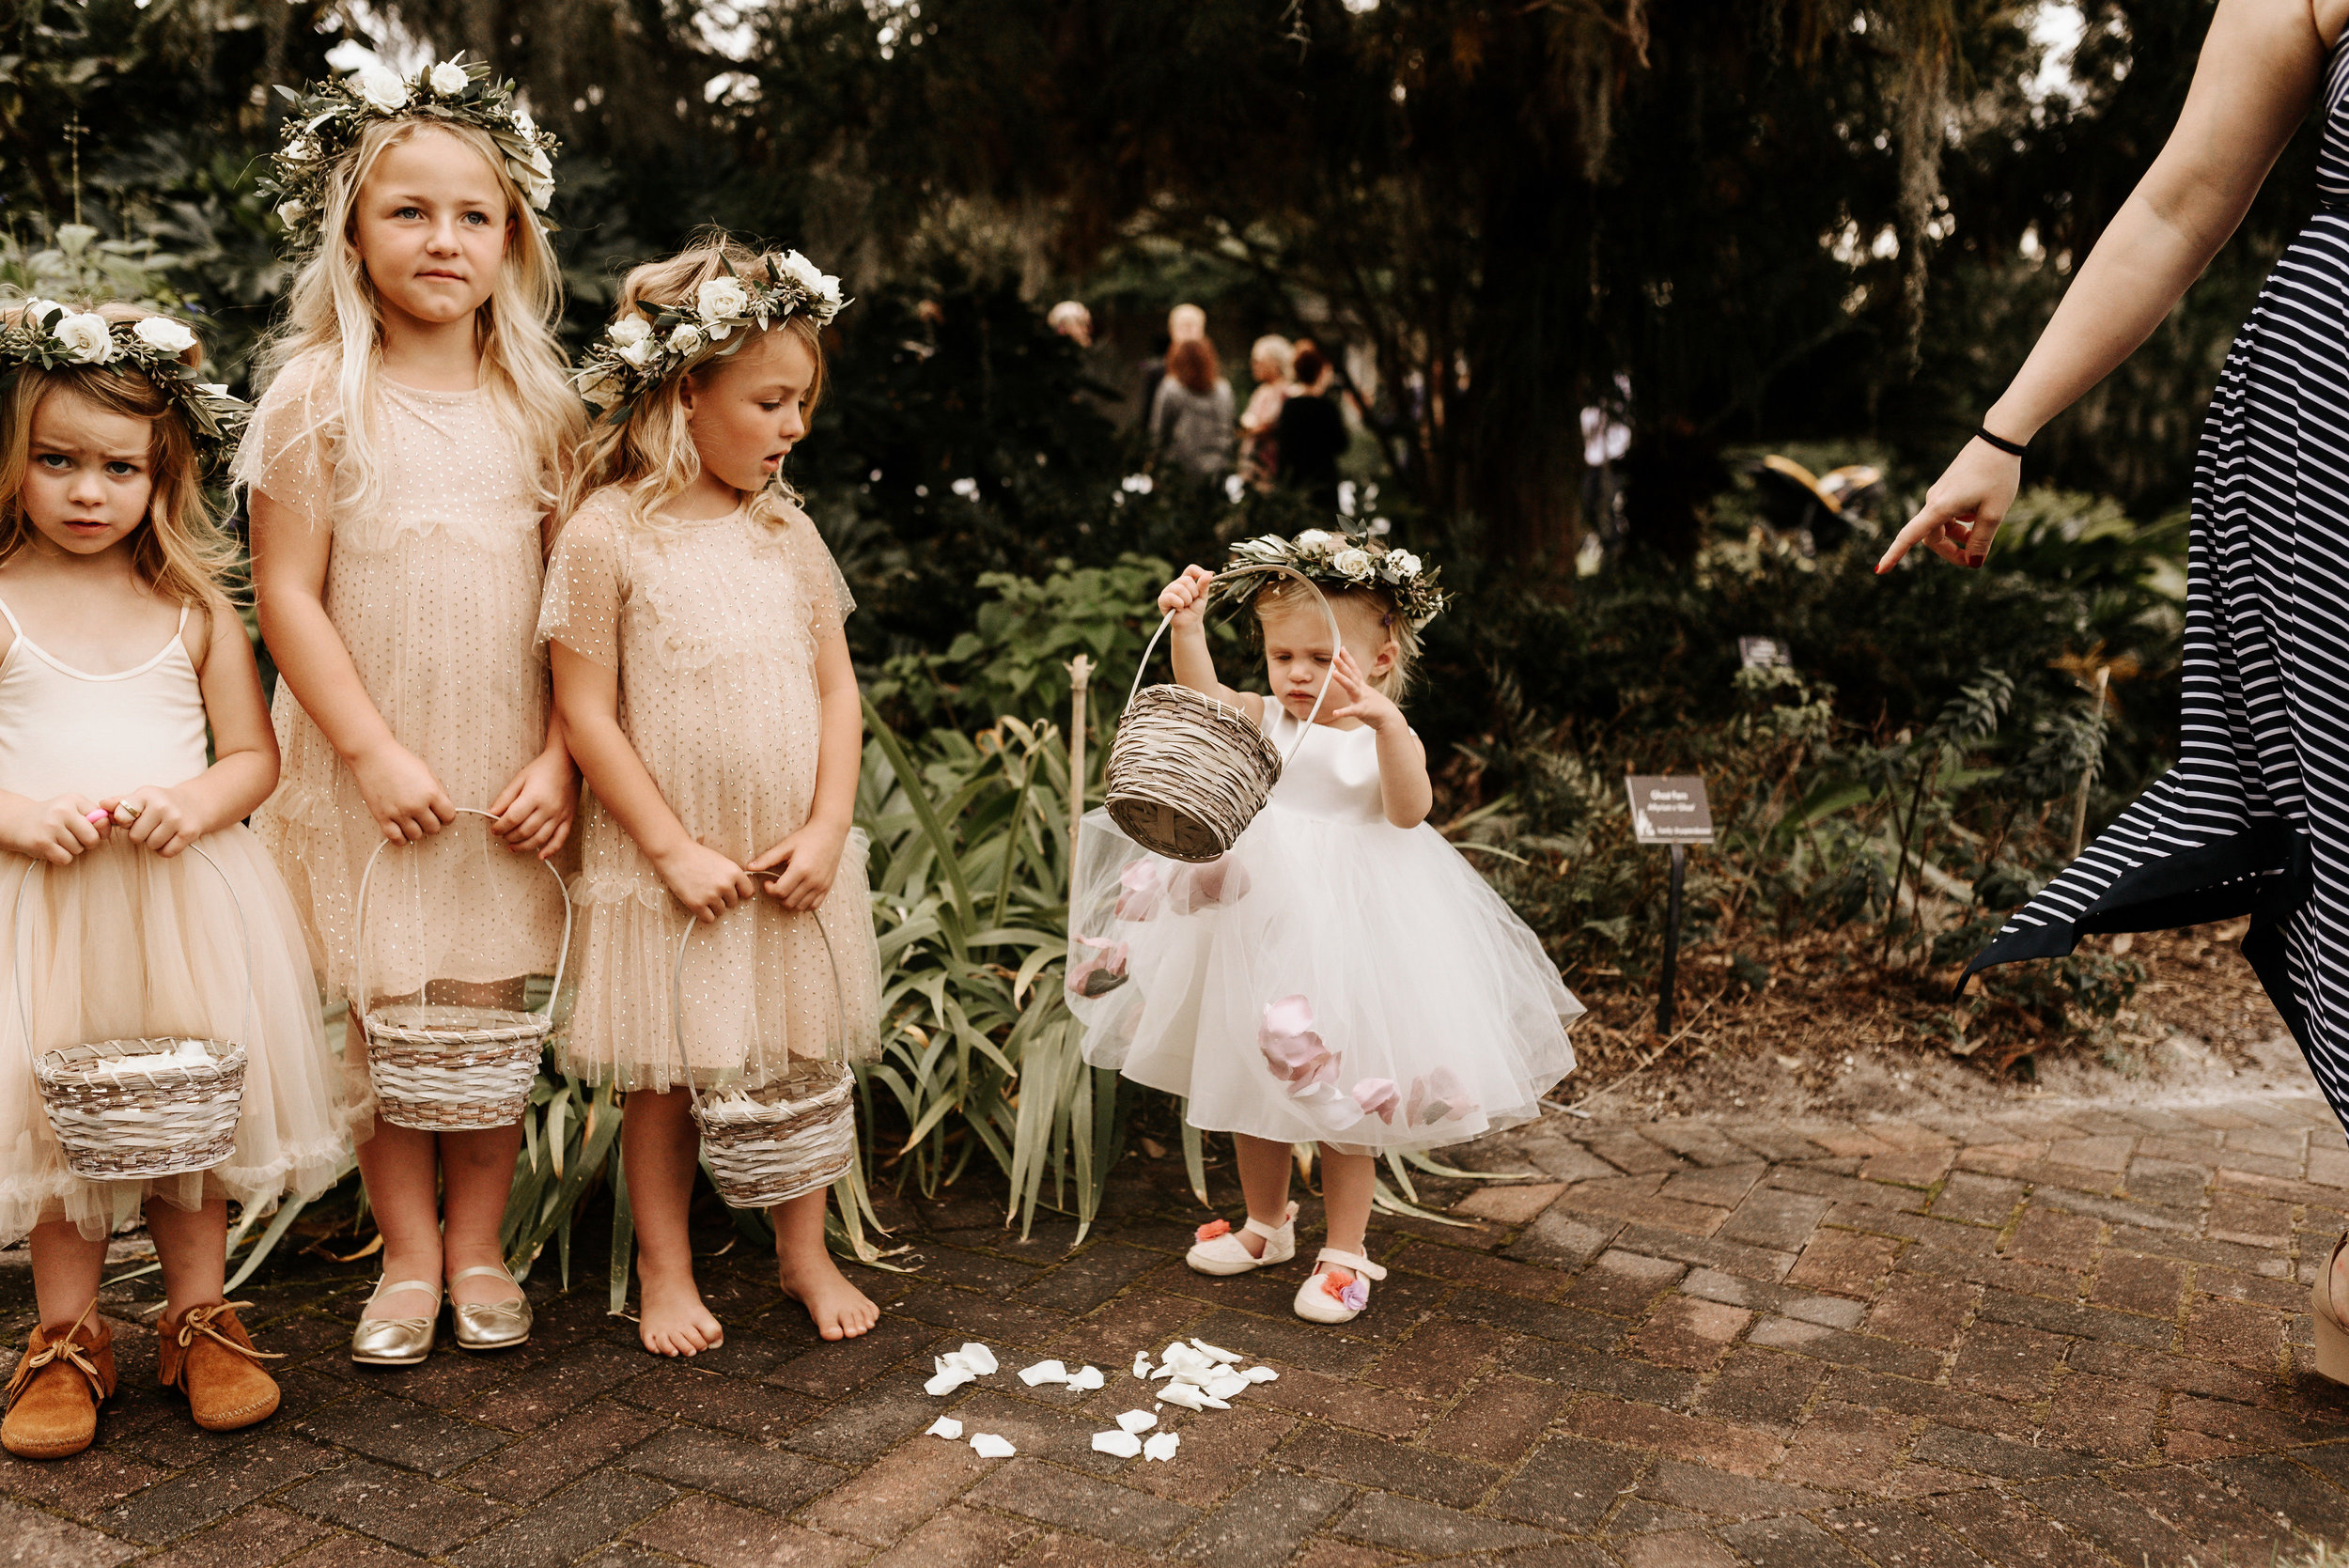 Kourtney_Sean_Savannah_Georgia_Wedding_Wormsloe_Histroic_Site_Coastal_Georgia_Botanical_Gardens_Photography_by_V_3912.jpg